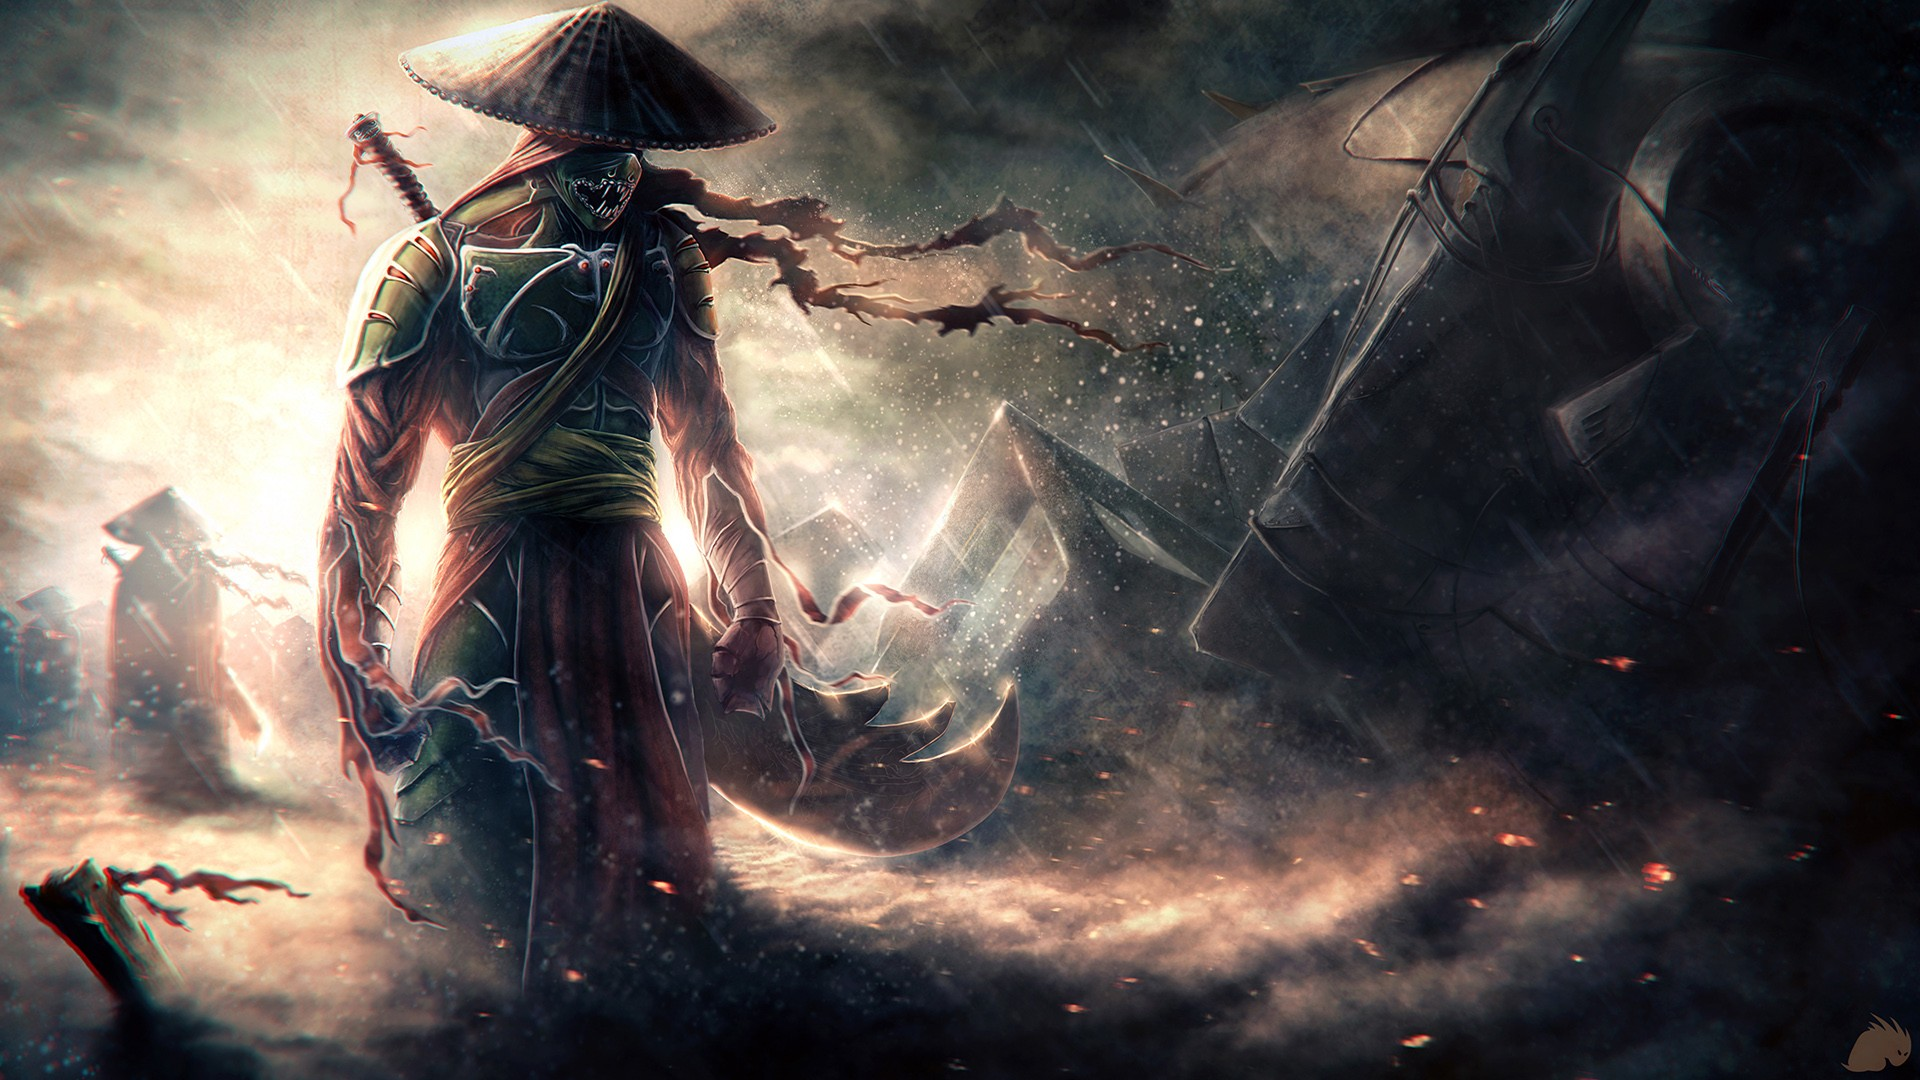 Eclipse Warrior Wallpapers HD Wallpapers ID 12453